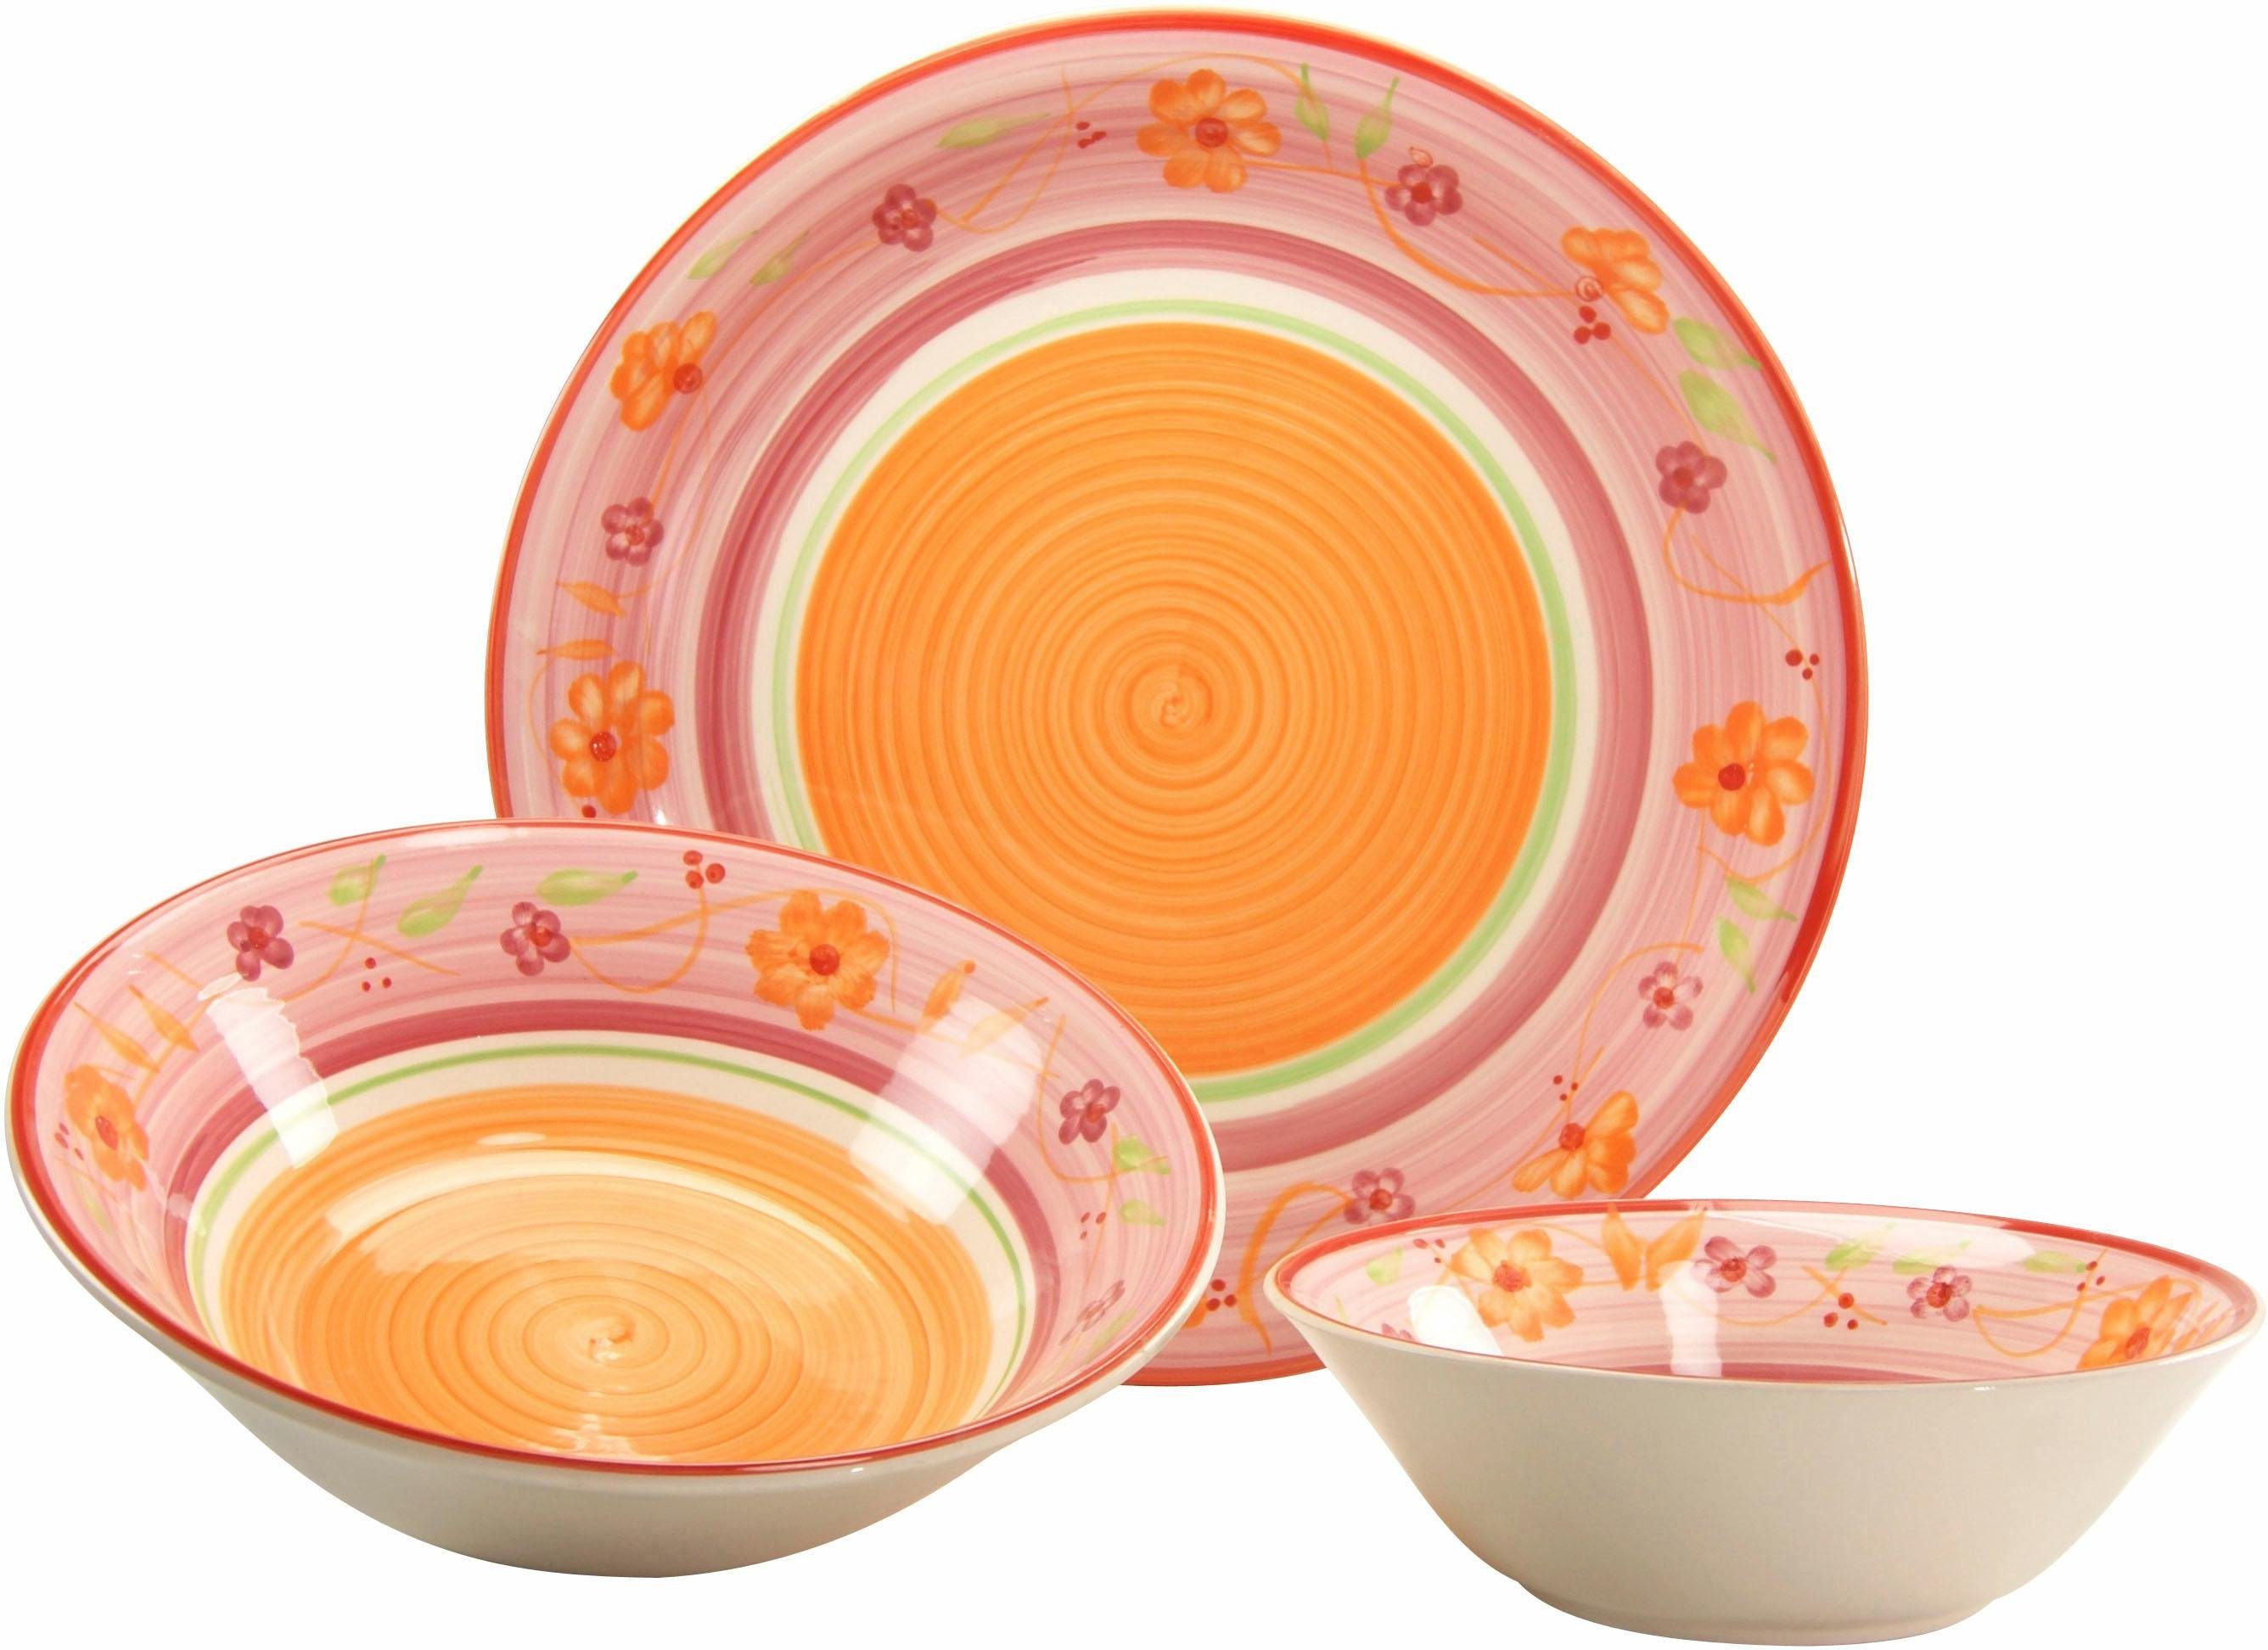 Creatable Steingut Servier-Set, »Flower Serenade Viva« (3-tlg.)